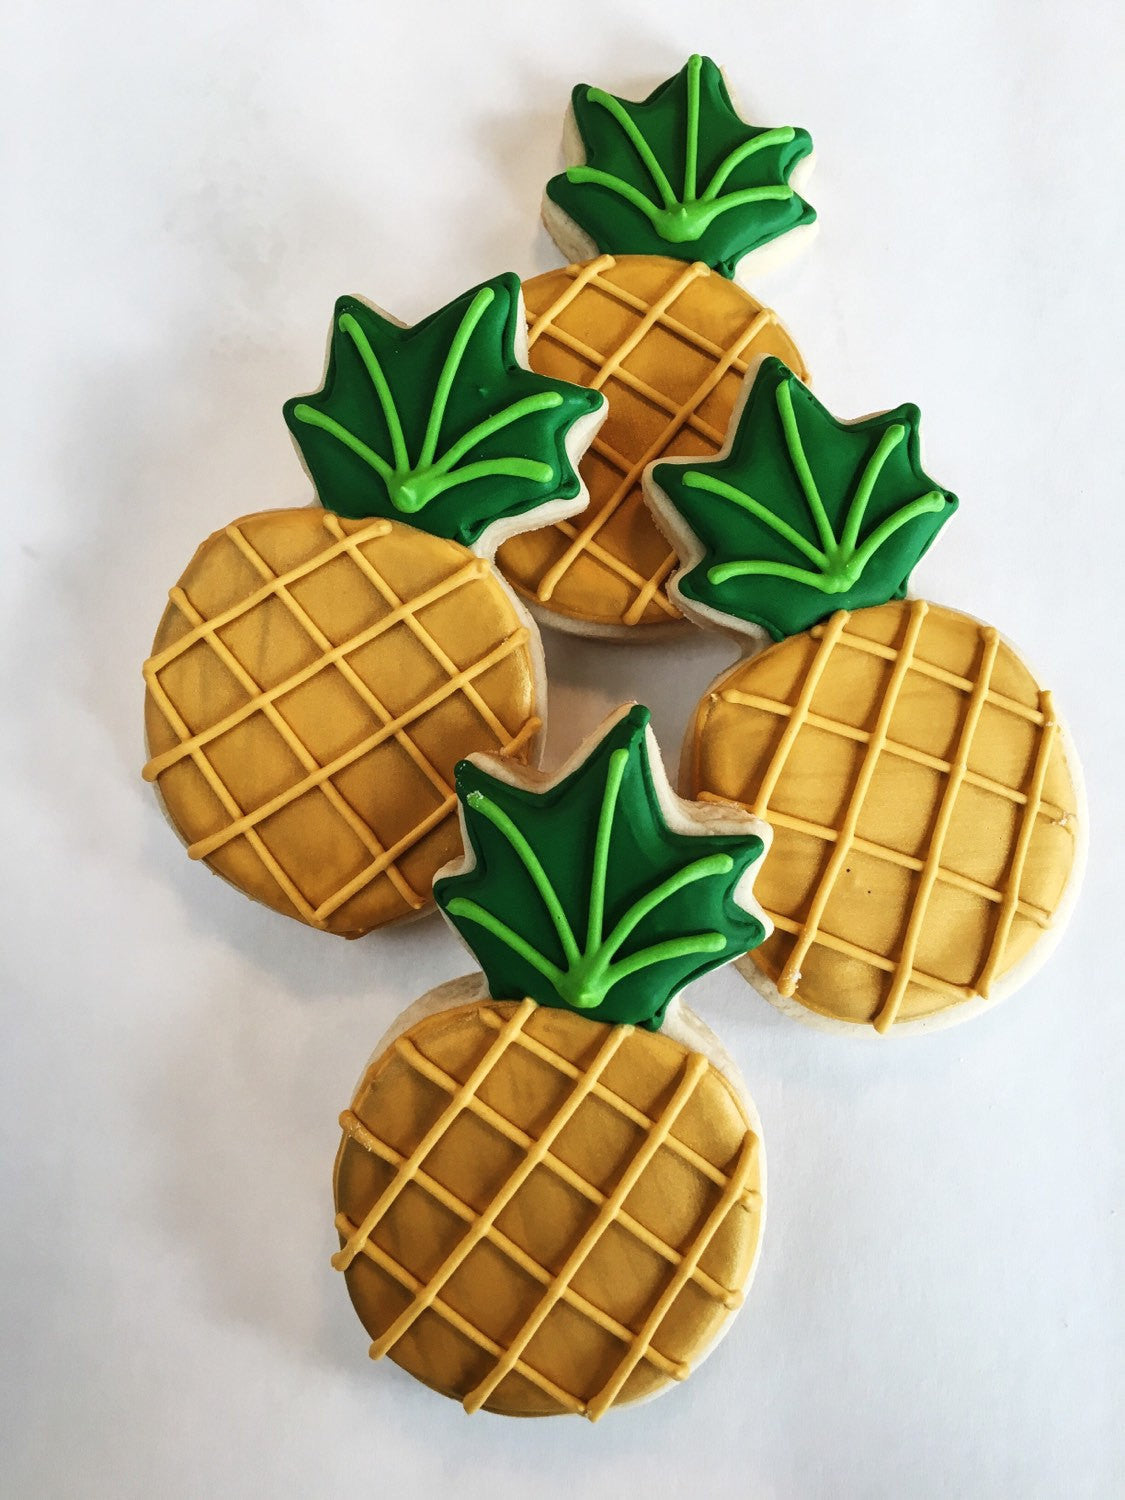 Pineapple Birthday Party Sugar Cookies The Iced Sugar Cookie Super Chic Design